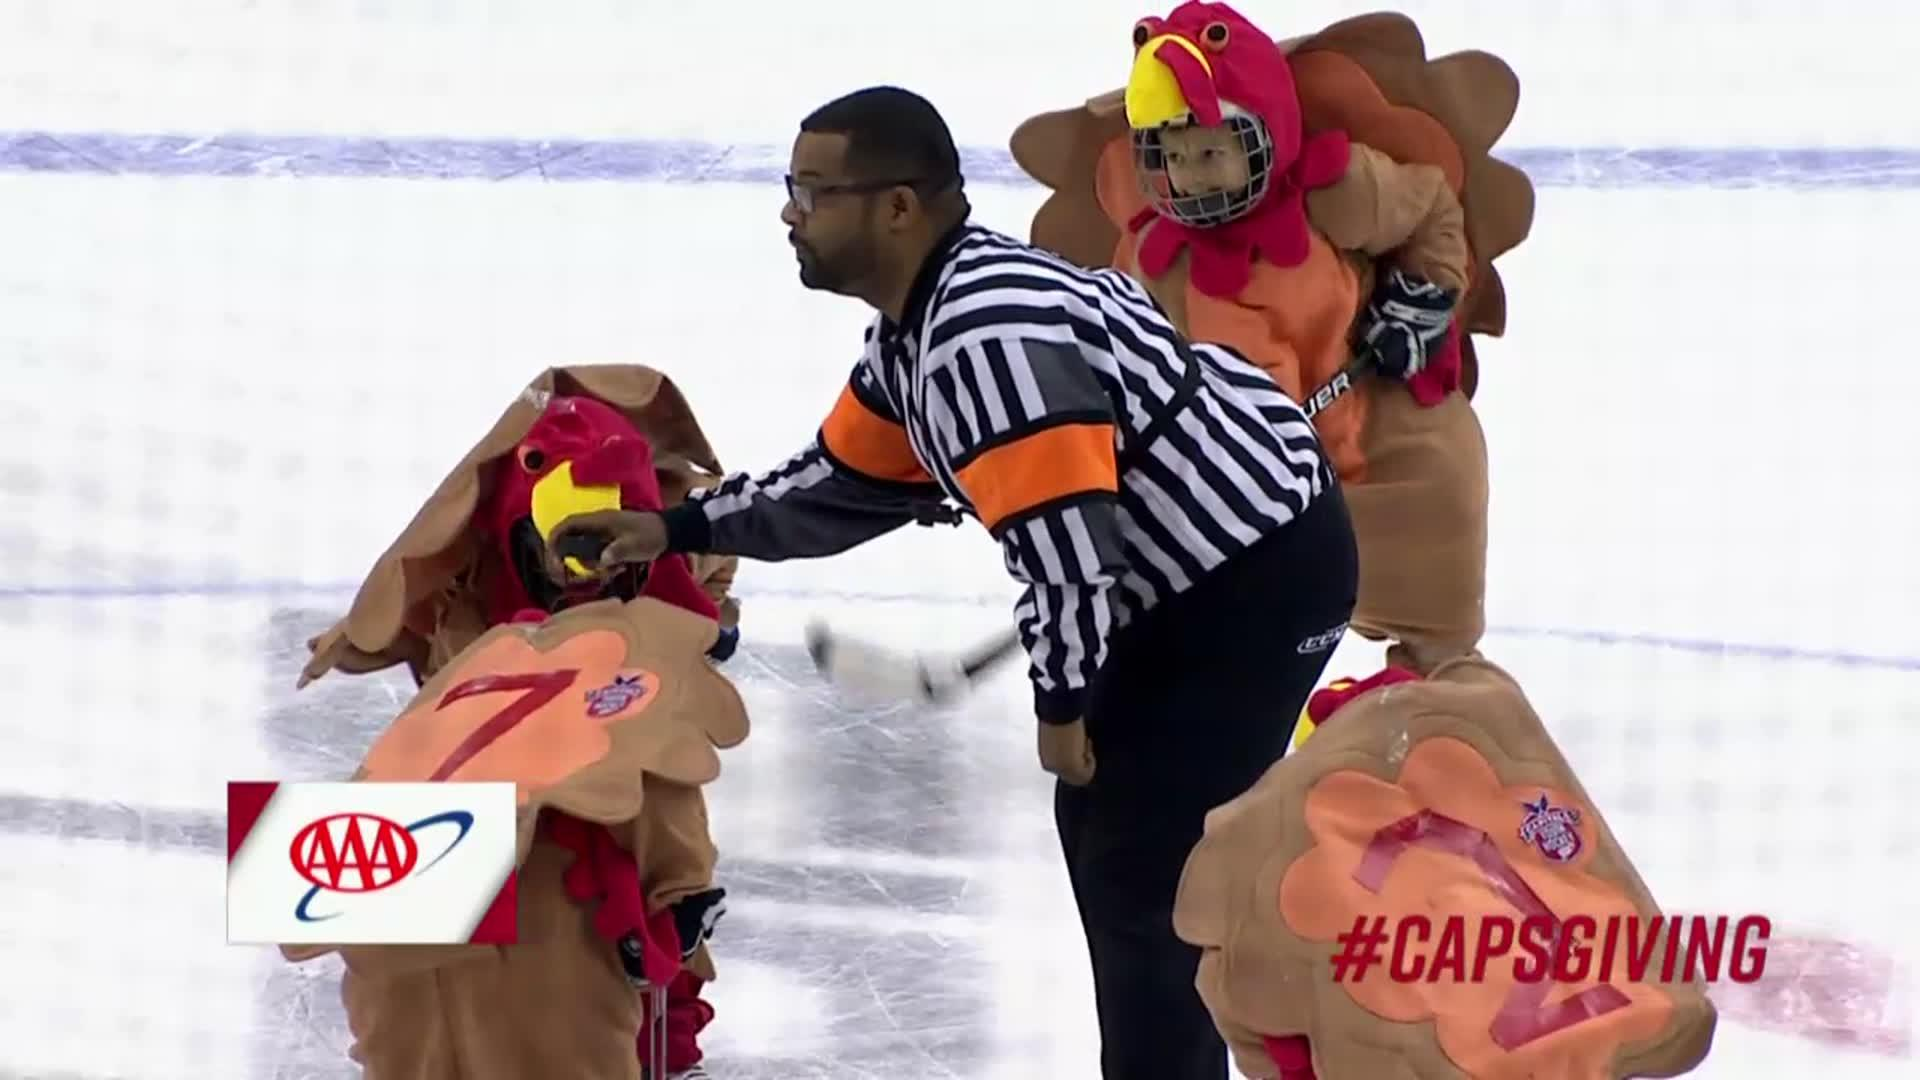 #CapsGiving Mites On Ice 11/22/17